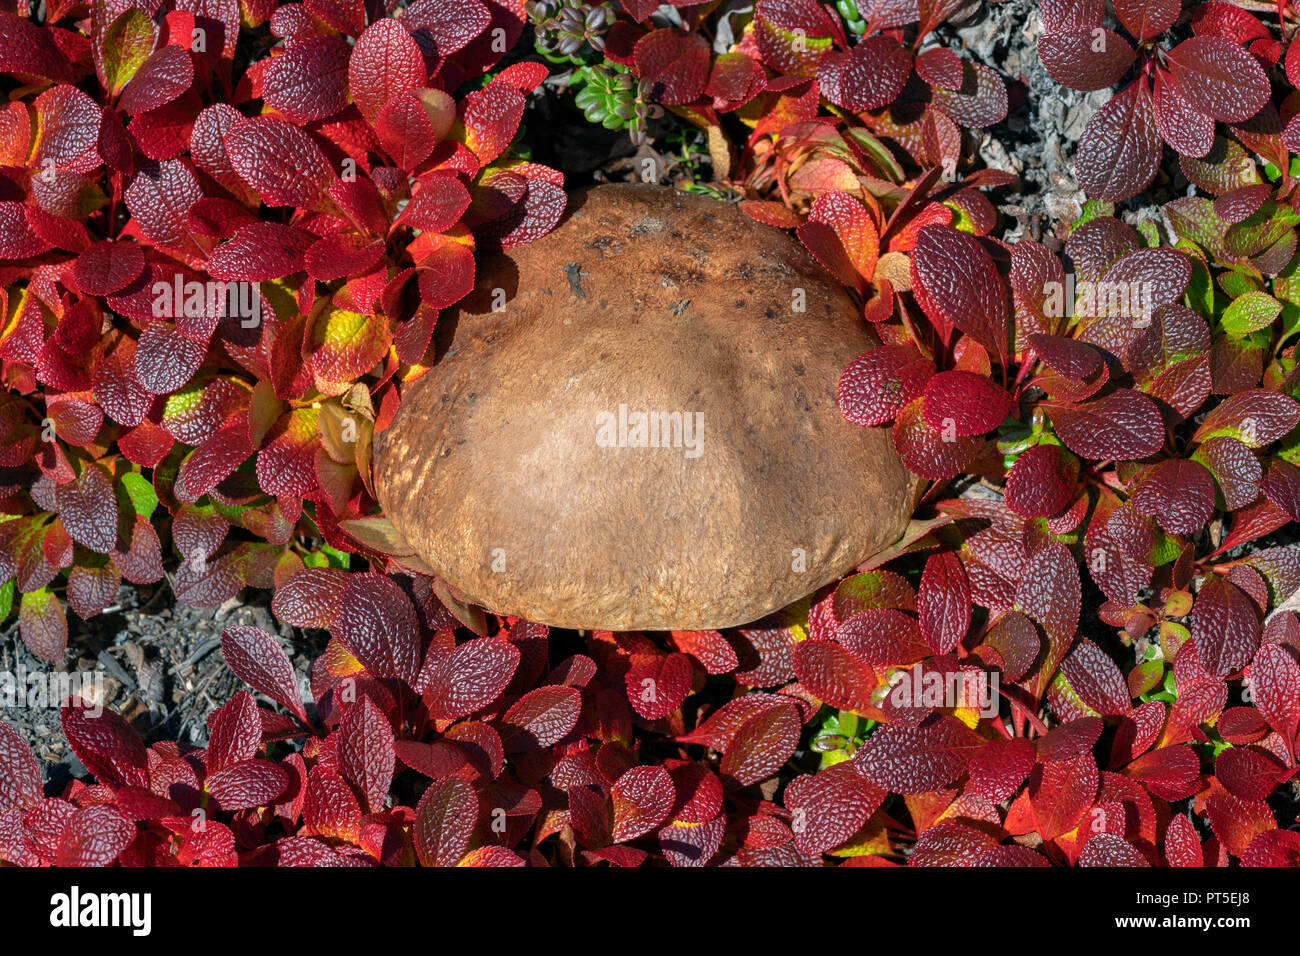 Growing wild edible mushroom Leccinum scabrum surrounded by dark red creeping deciduous shrub Arctostaphylos alpina in autumn dress in sunny weather. Stock Photo